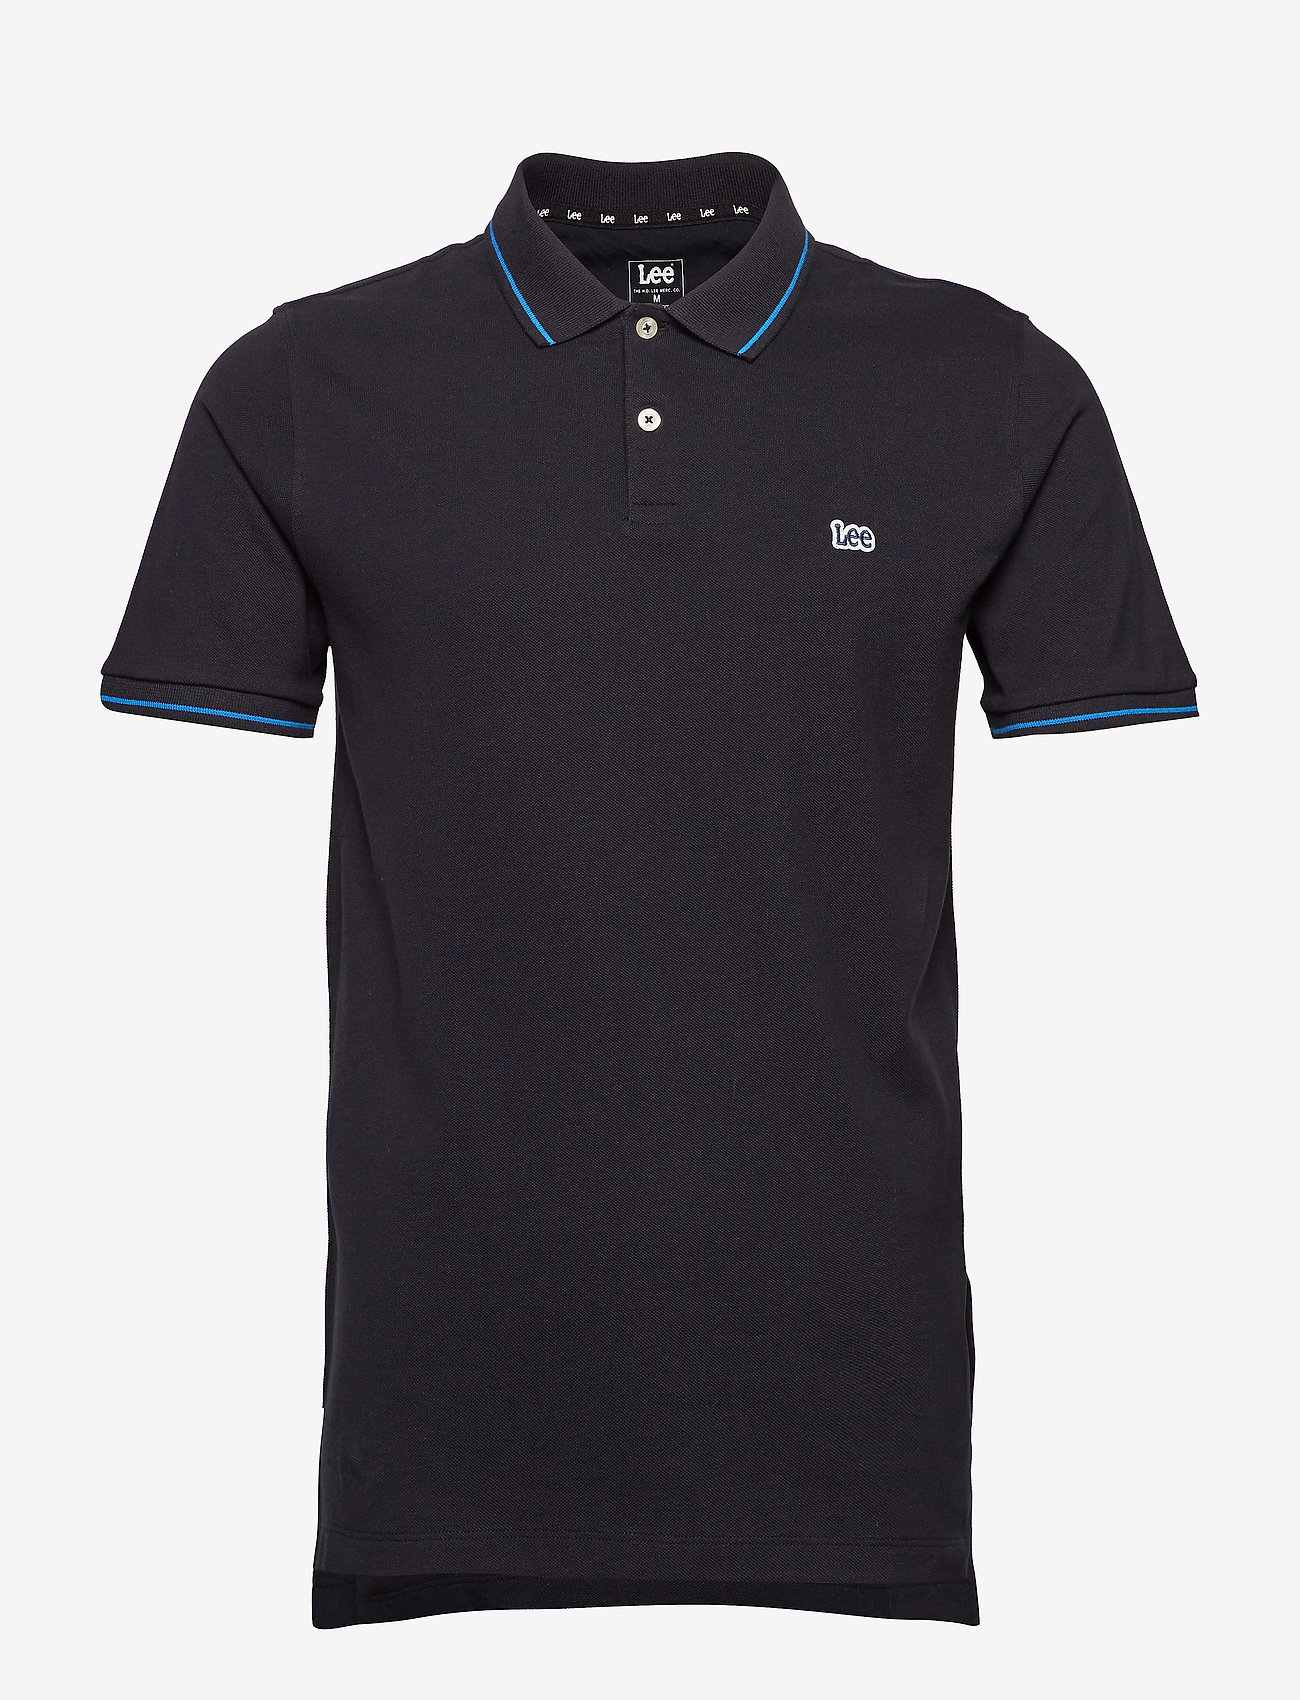 Lee Jeans - PIQUE POLO - short-sleeved polos - black - 0